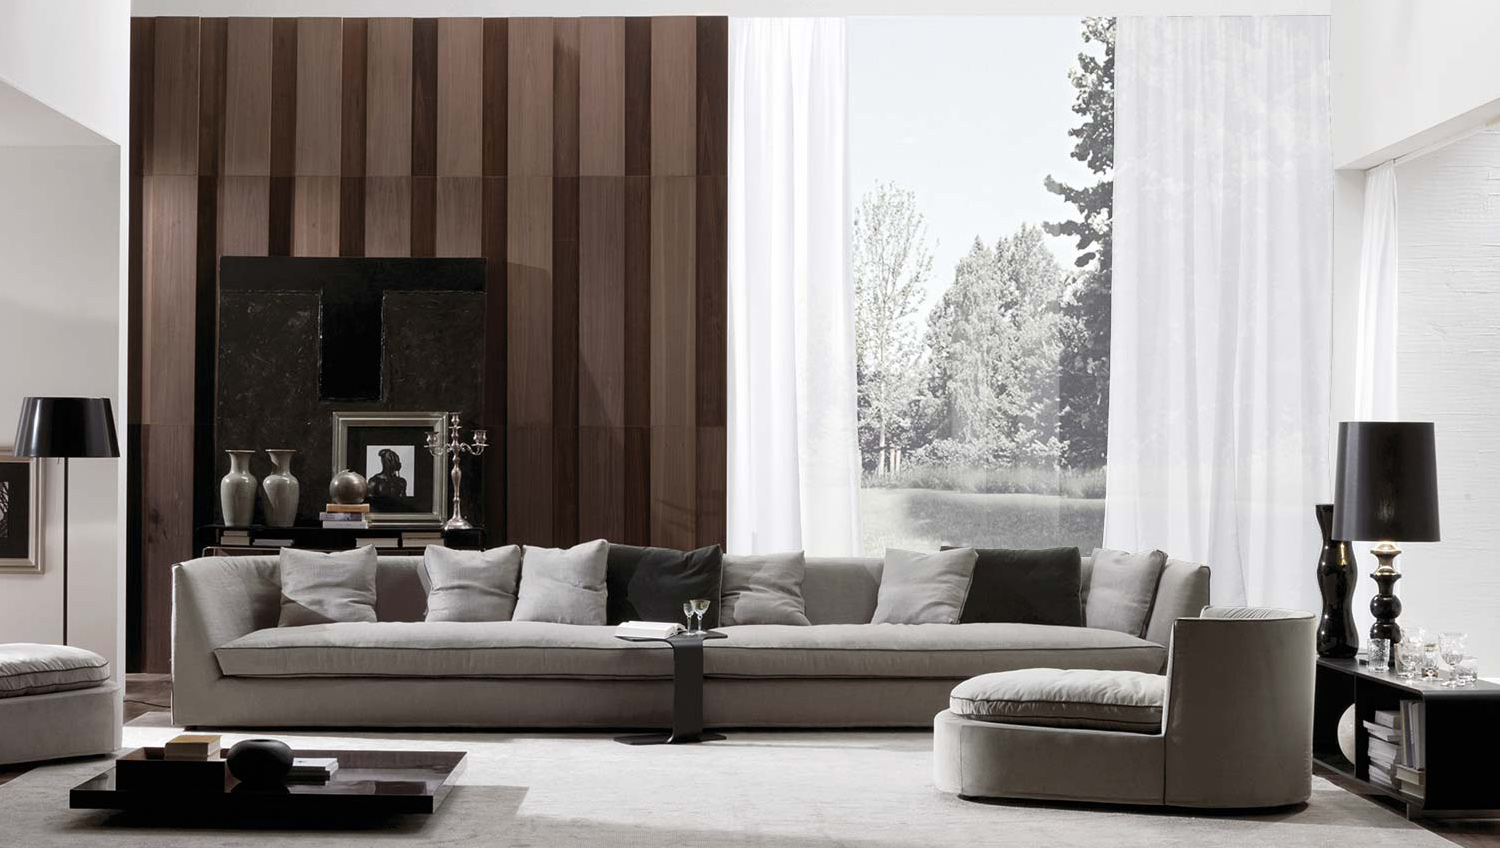 decor design muenchen sofas decordesign. Black Bedroom Furniture Sets. Home Design Ideas